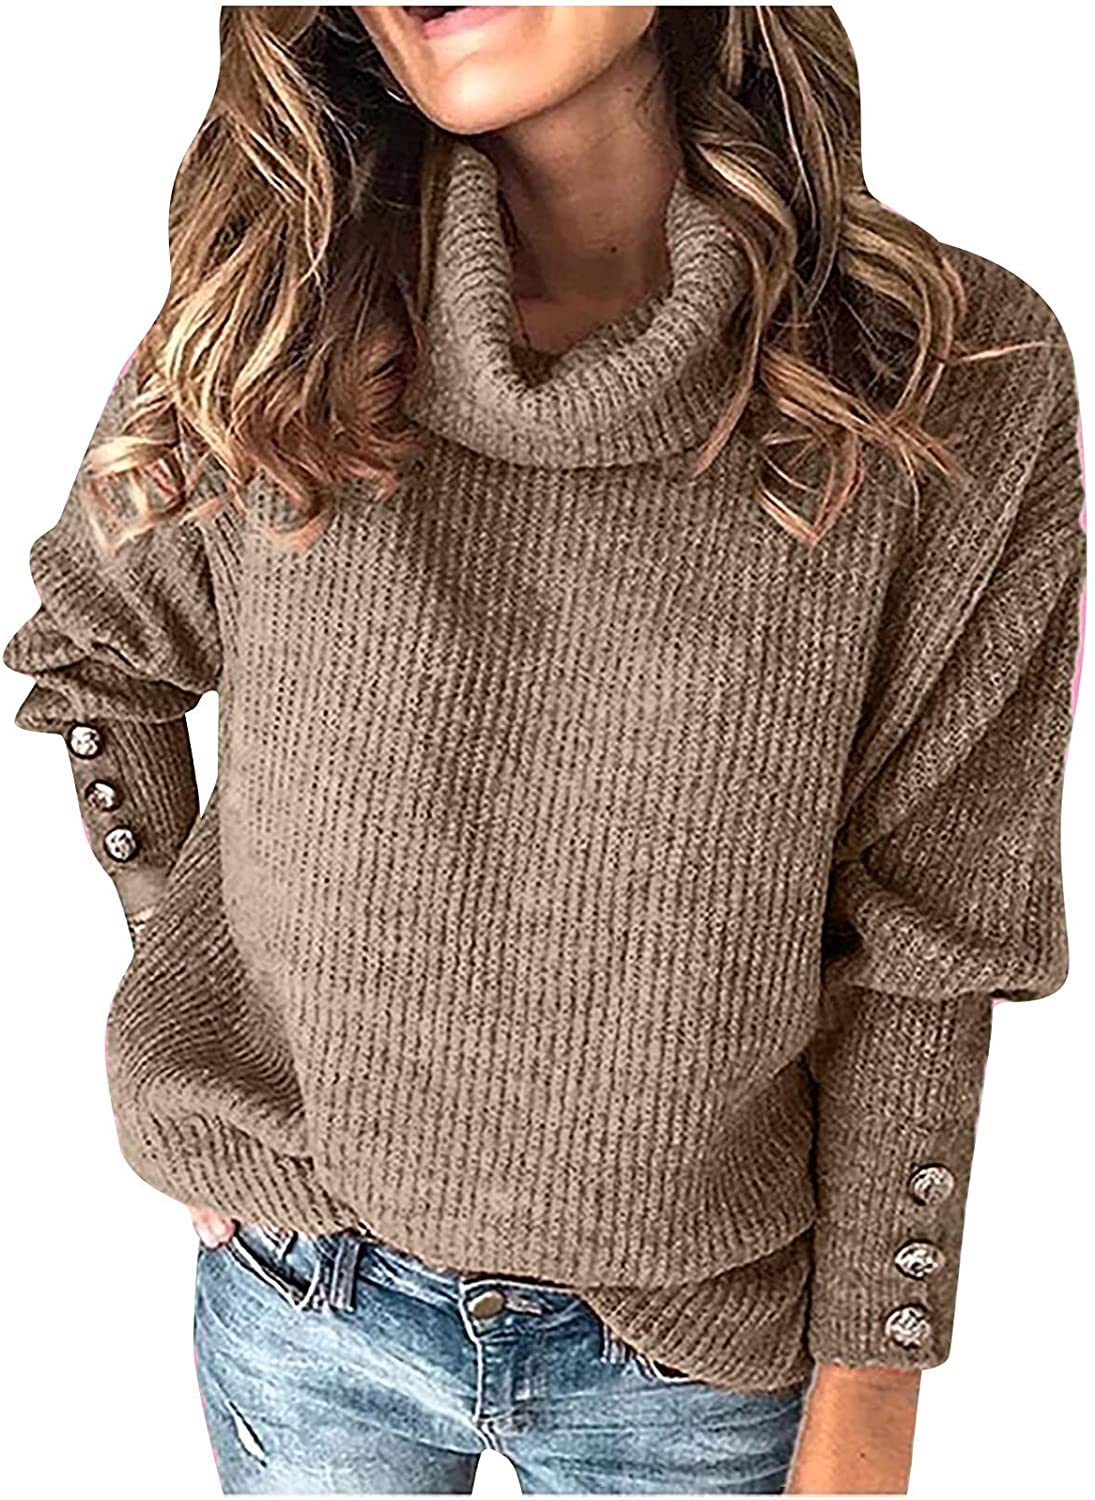 Sweaters for Women,Womens Tops Fashion Fit Turtleneck Jumper Autumn Knitted Long Sleeve New Solid Color Ladies Elegant Blouse